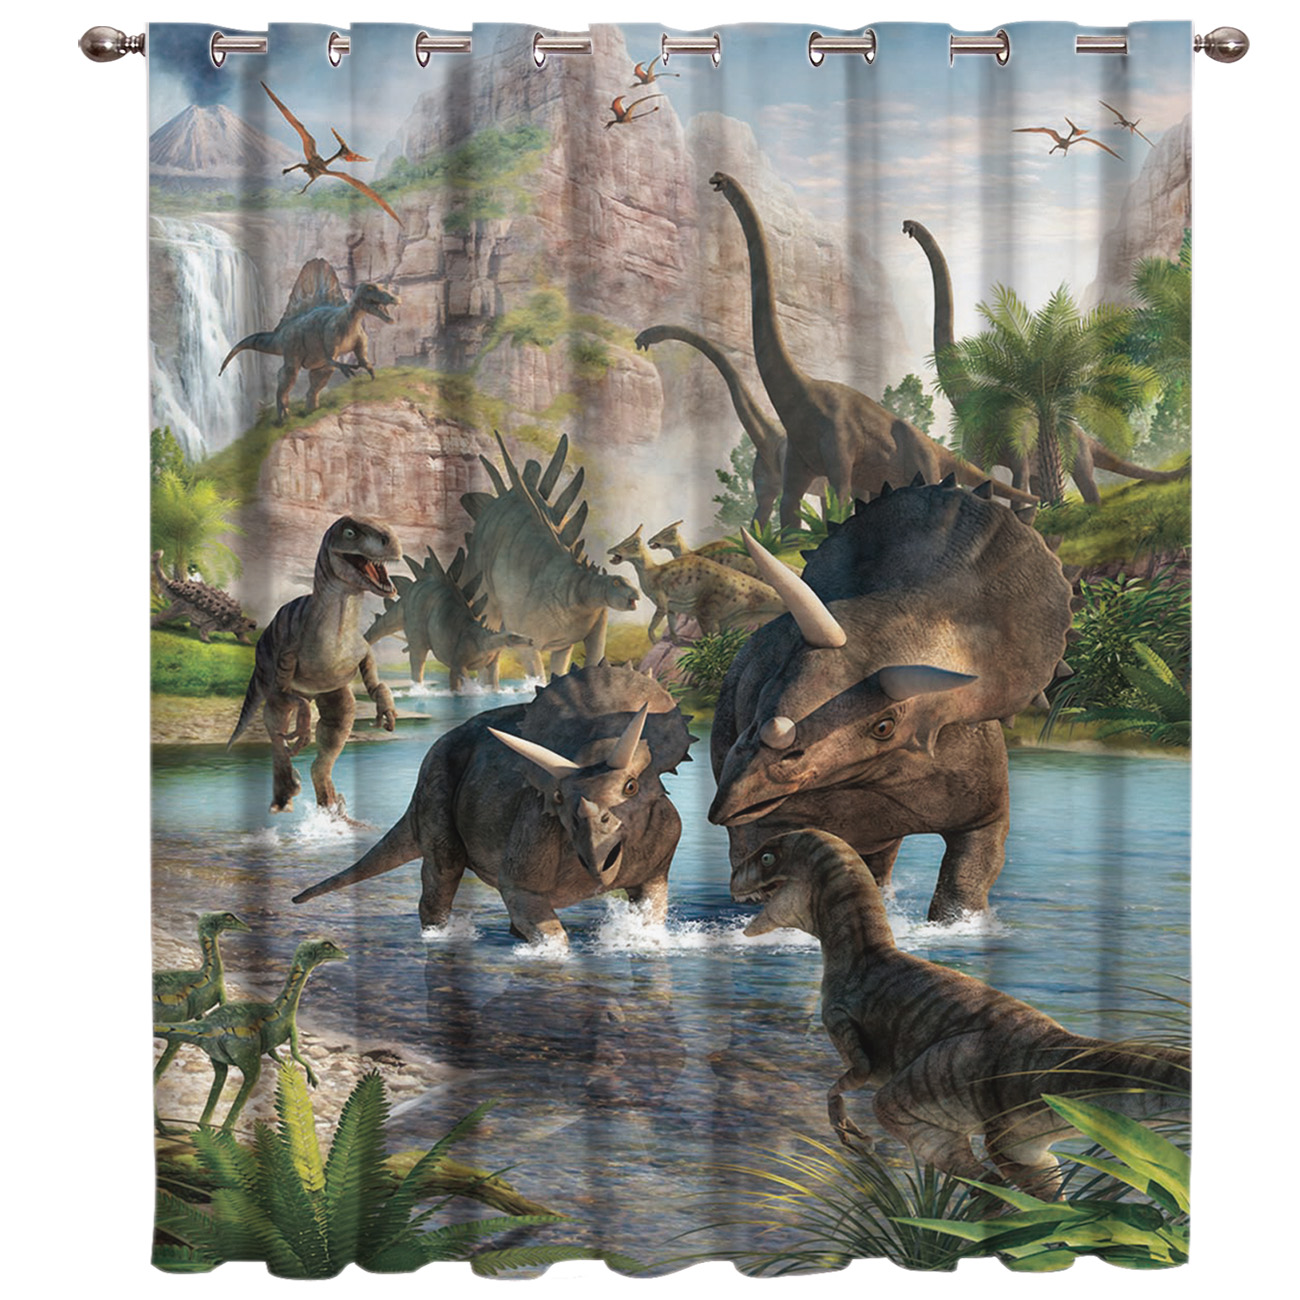 Jurassic Period Dinosaur Room Curtains Large Window Living Room Decor Bathroom Bedroom Drapes Decor Kids Window Treatment